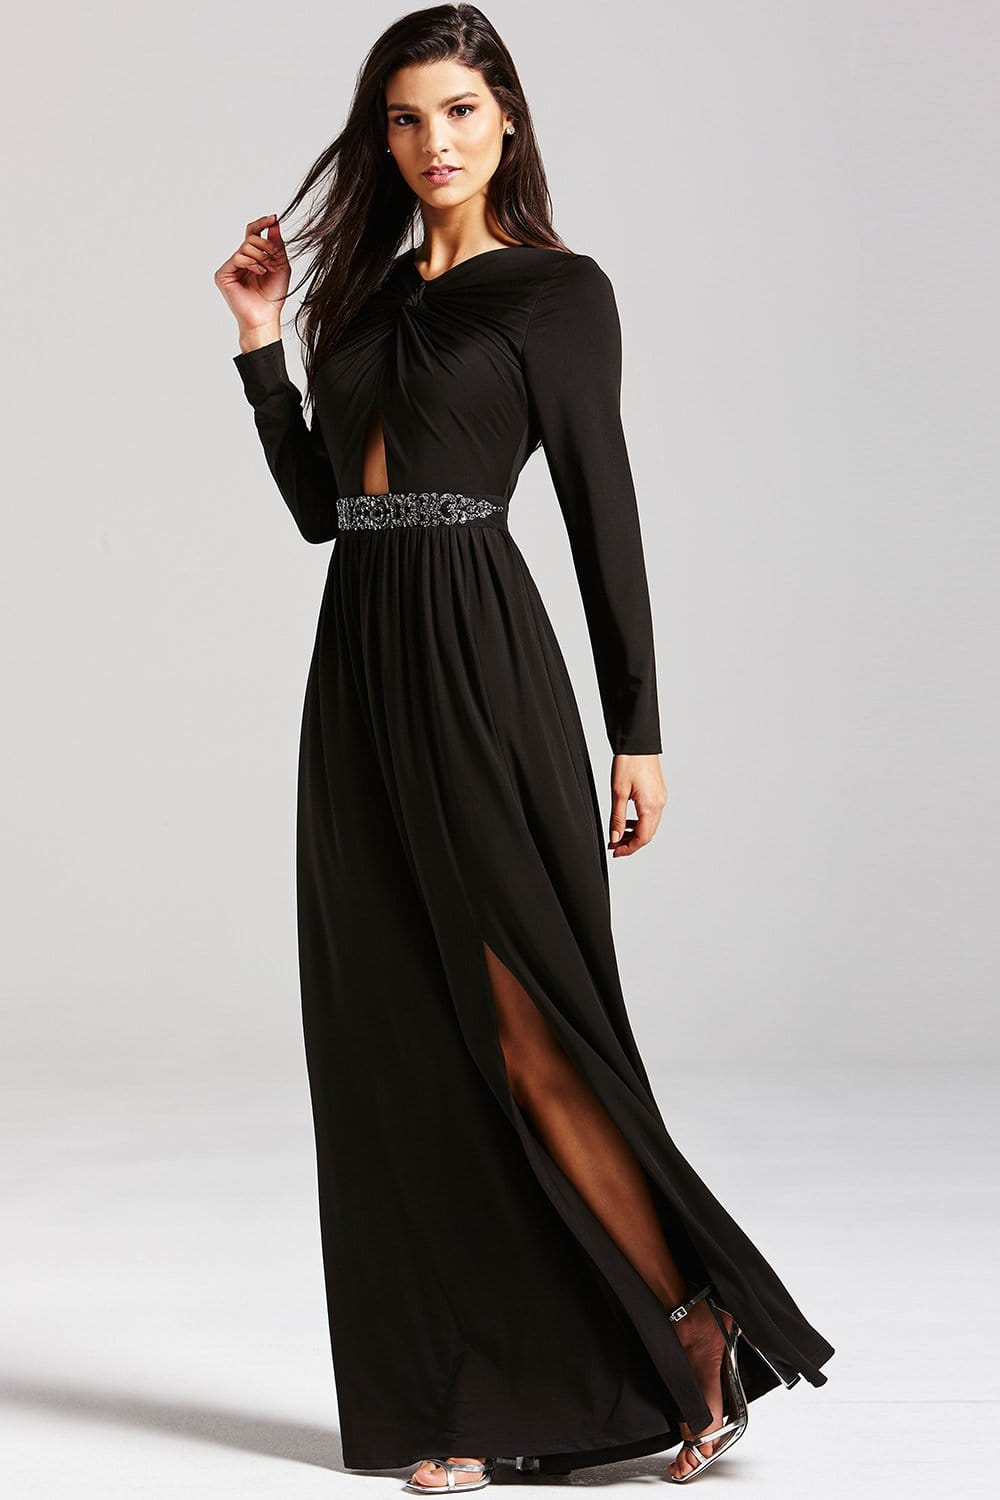 Black Embellished Cut Out Maxi Dress From Little Mistress Uk